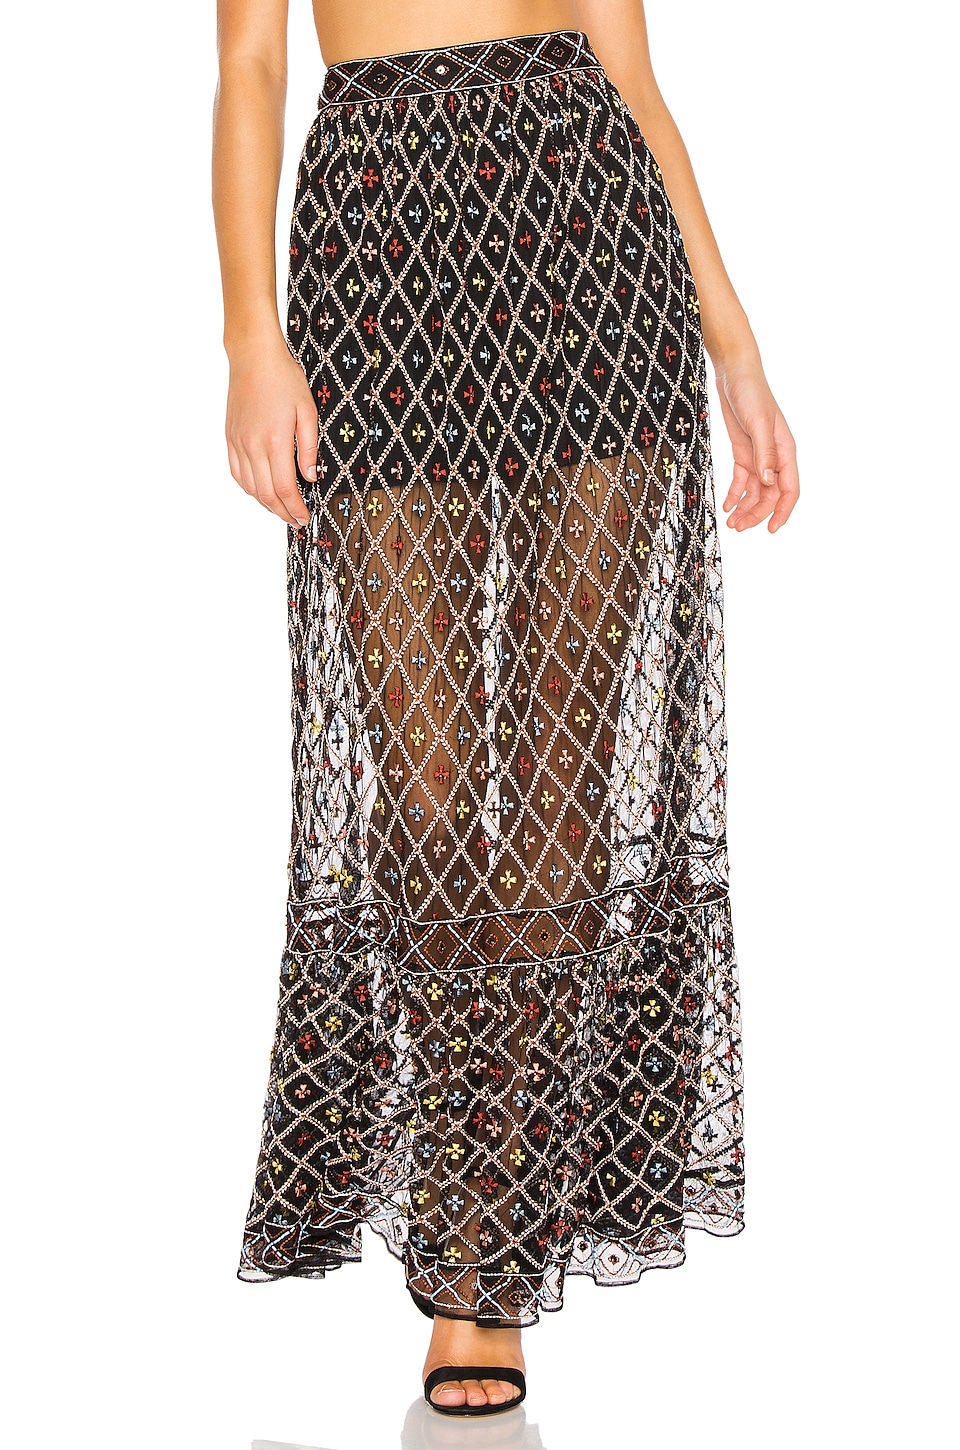 Tularosa Lexi Skirt in Black